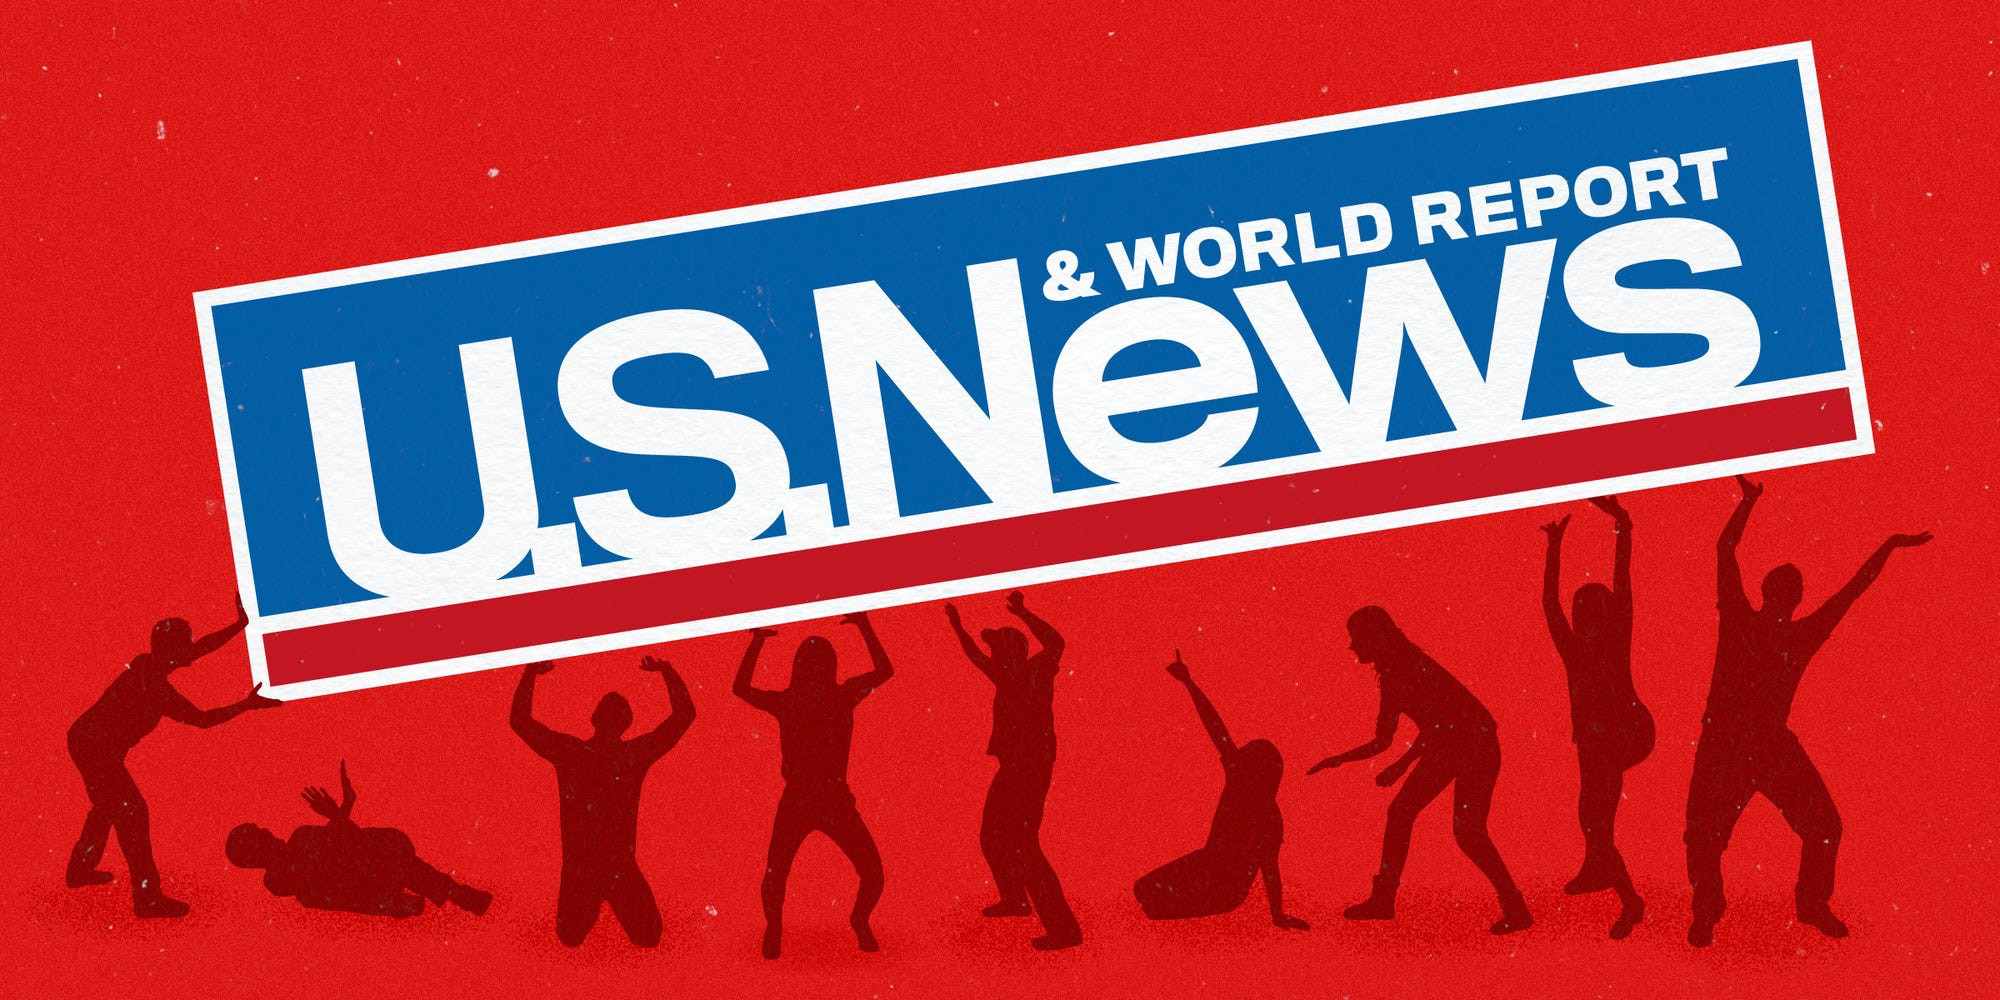 A graphic featuring figures holding up a U.S. News & World Report banner.